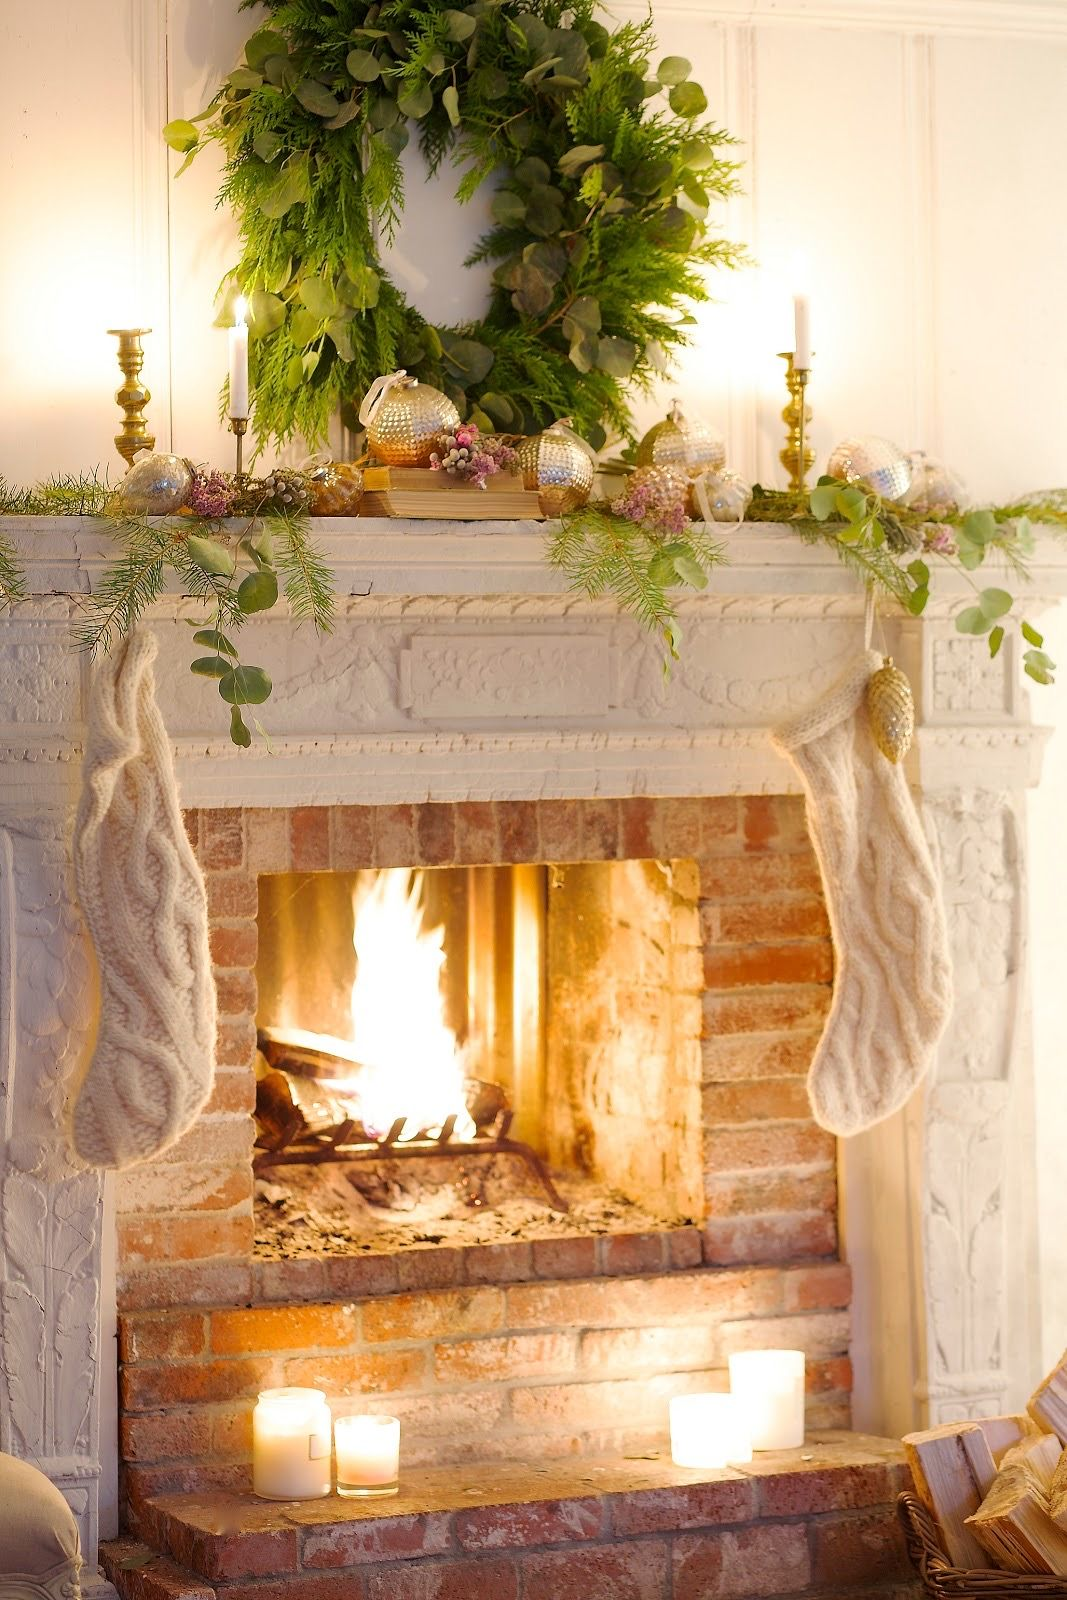 Pin by Heather Hidell on Remodel Fireplace in 2020